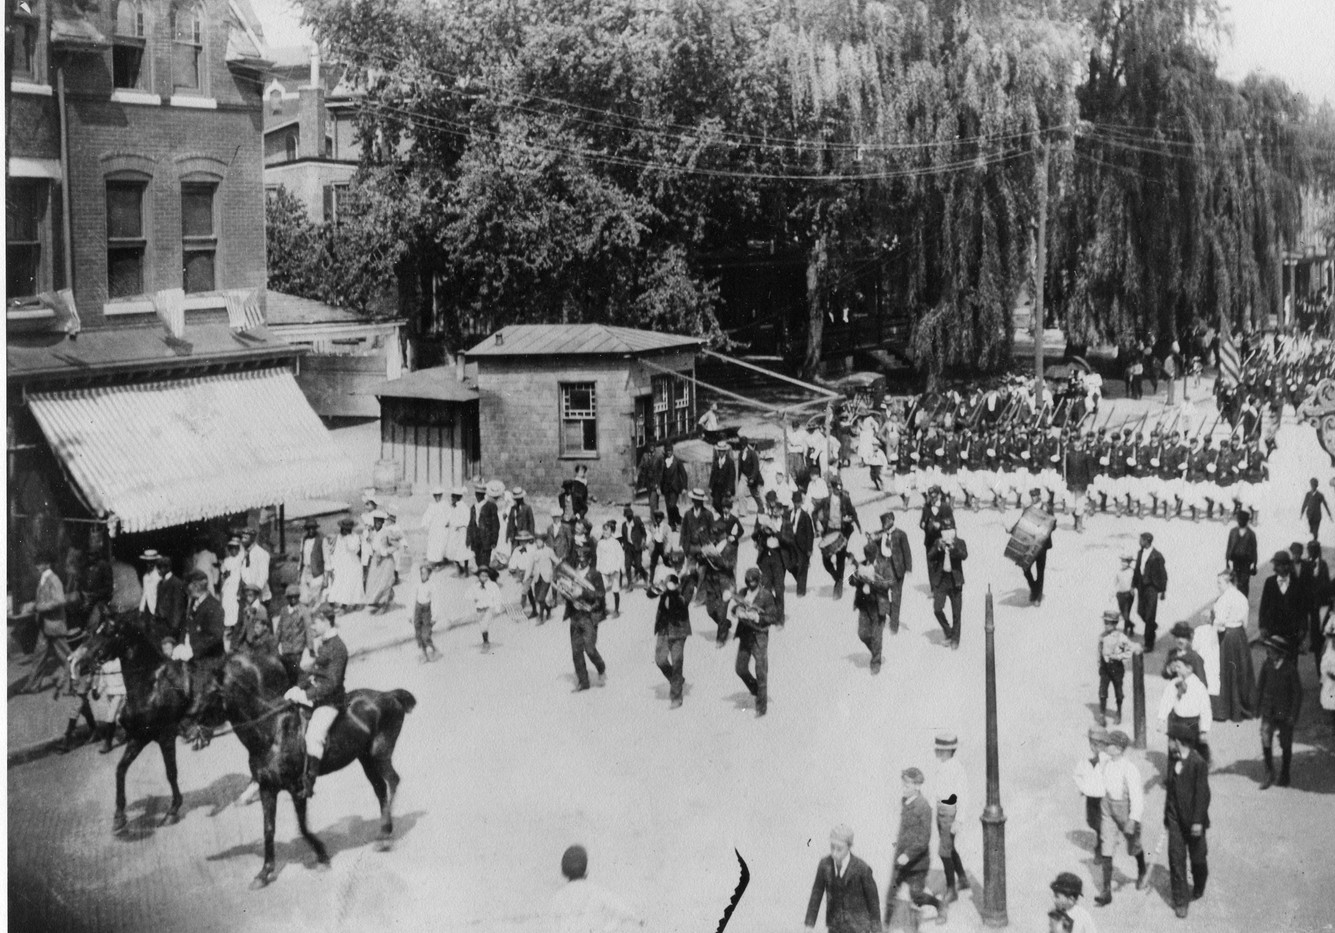 1882 Civil War parade in Media, PA